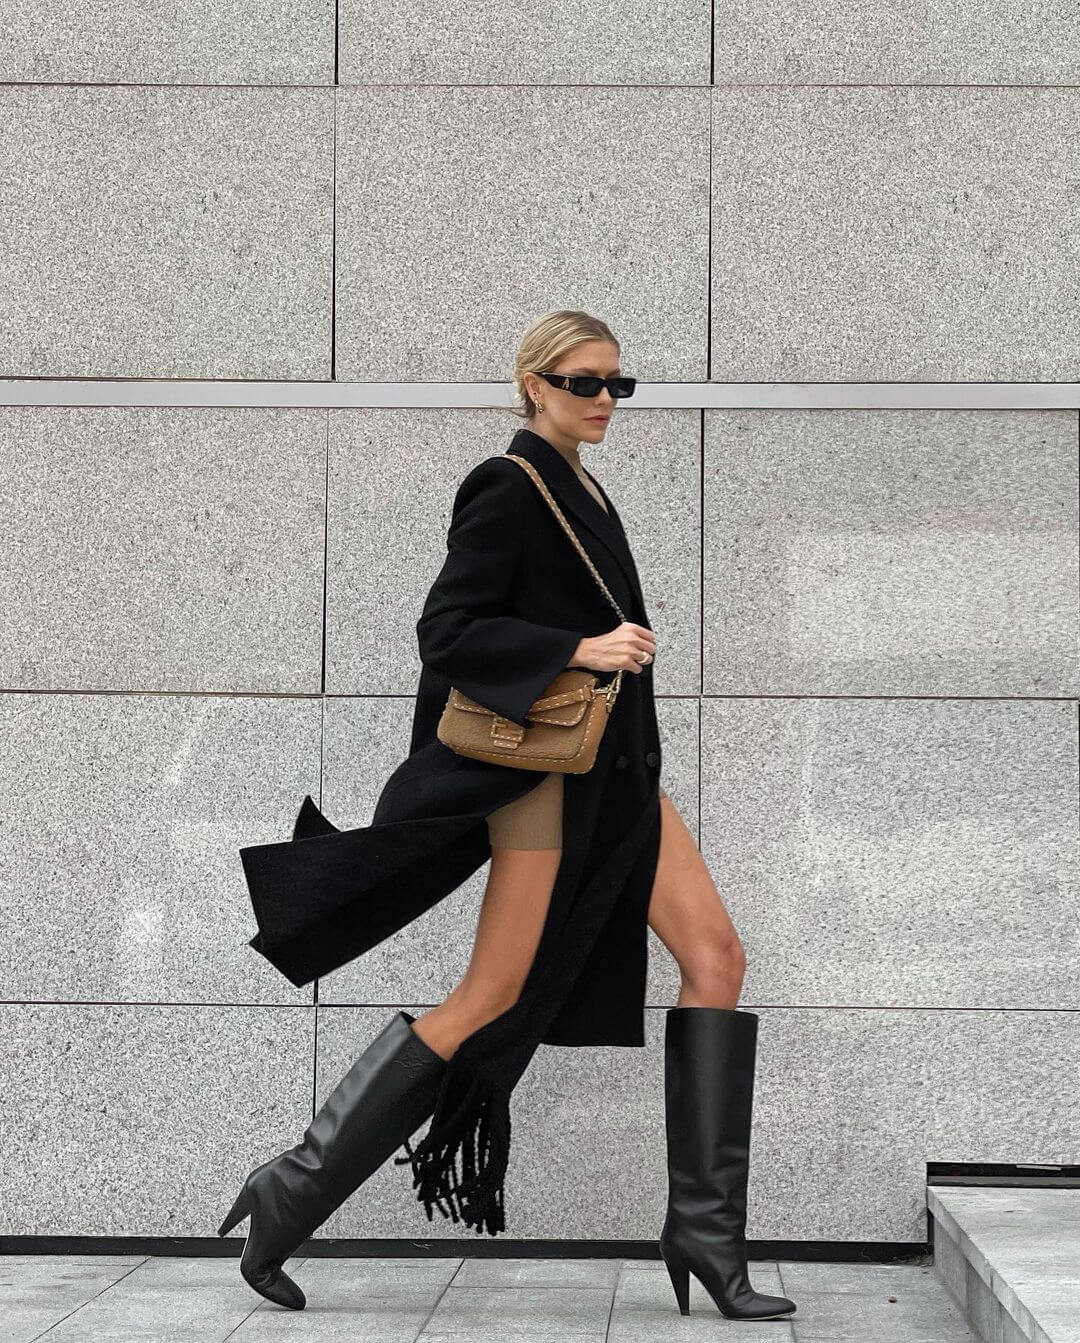 Level Up Your Wardrobe With Structured Knee-High Boots